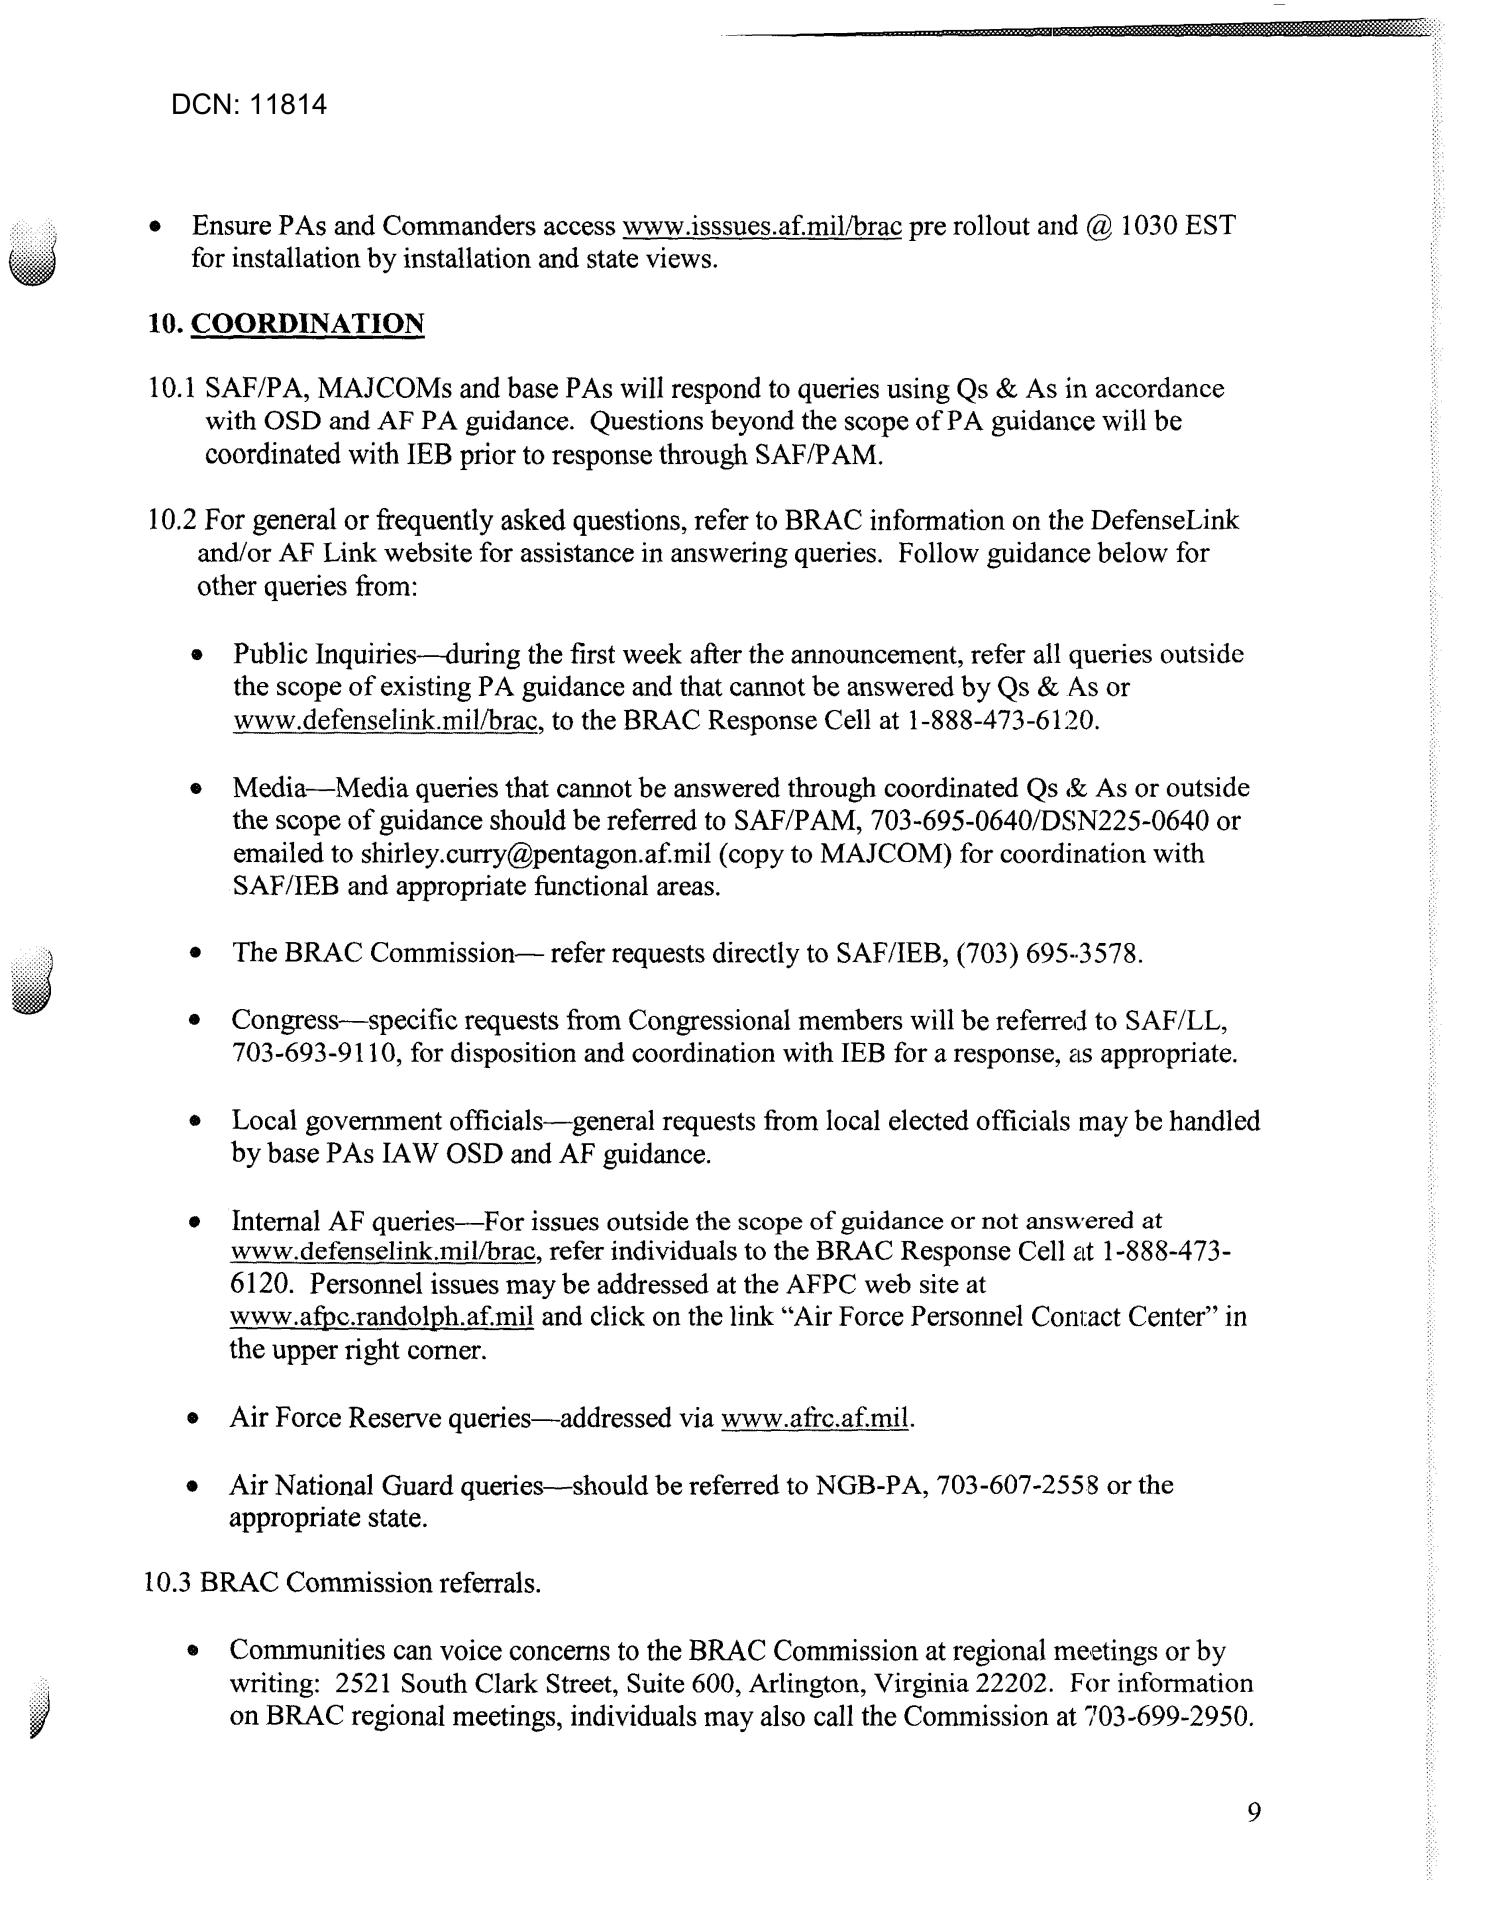 BRAC Analysis - Notes and Research - Page 60 of 115